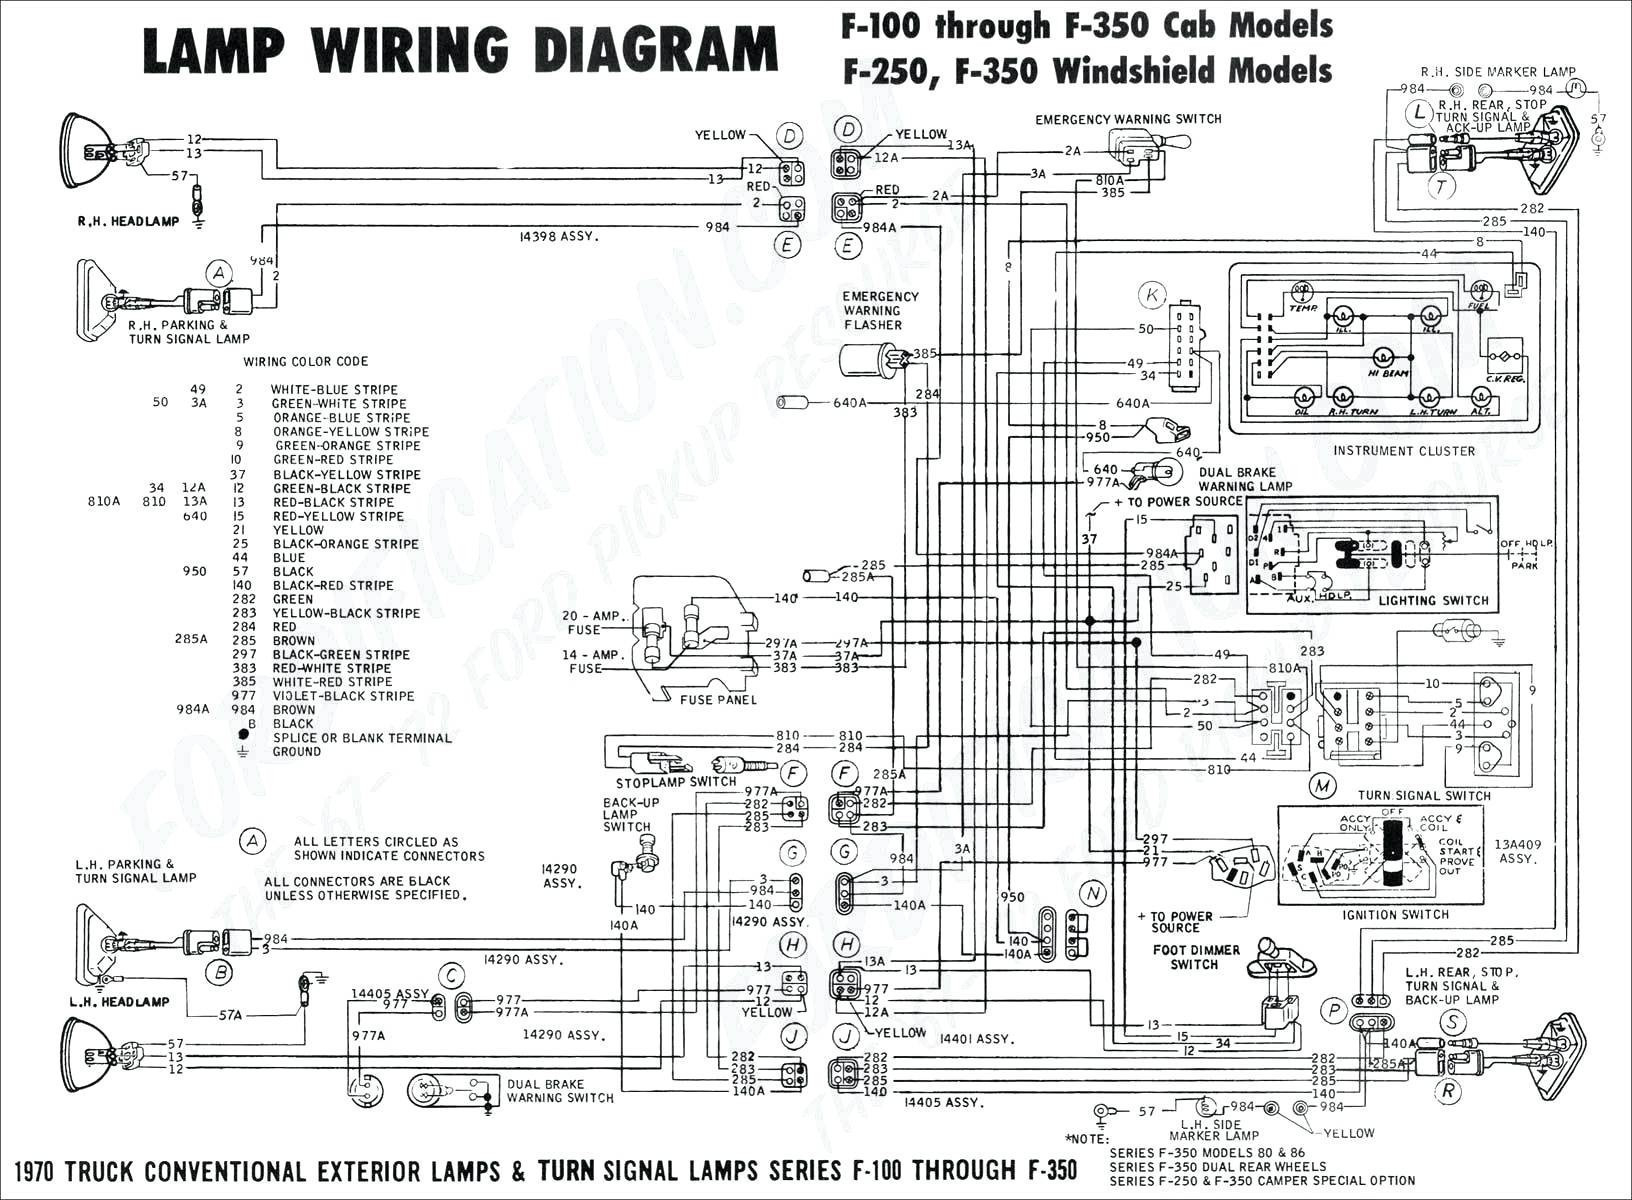 Audi Concert Radio Wiring Diagram Auto Electrical Air Conditioner Compressor For1972 Chevelle Related With